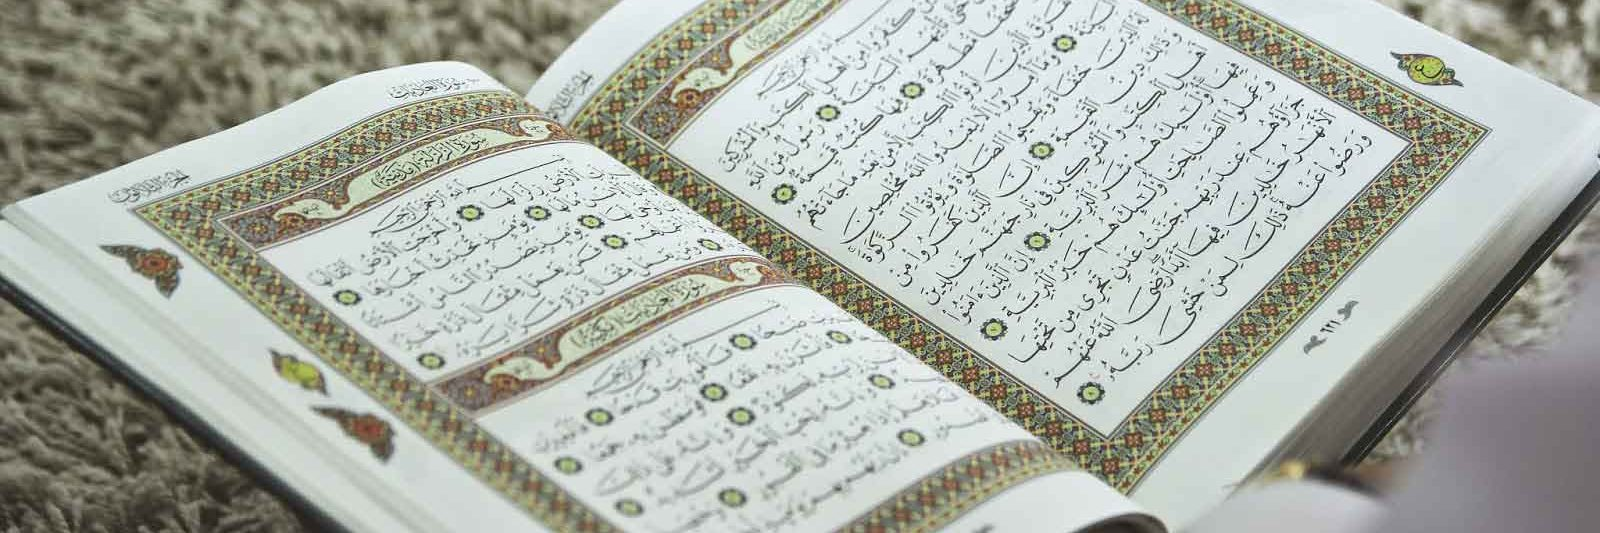 basic quran learning courses online